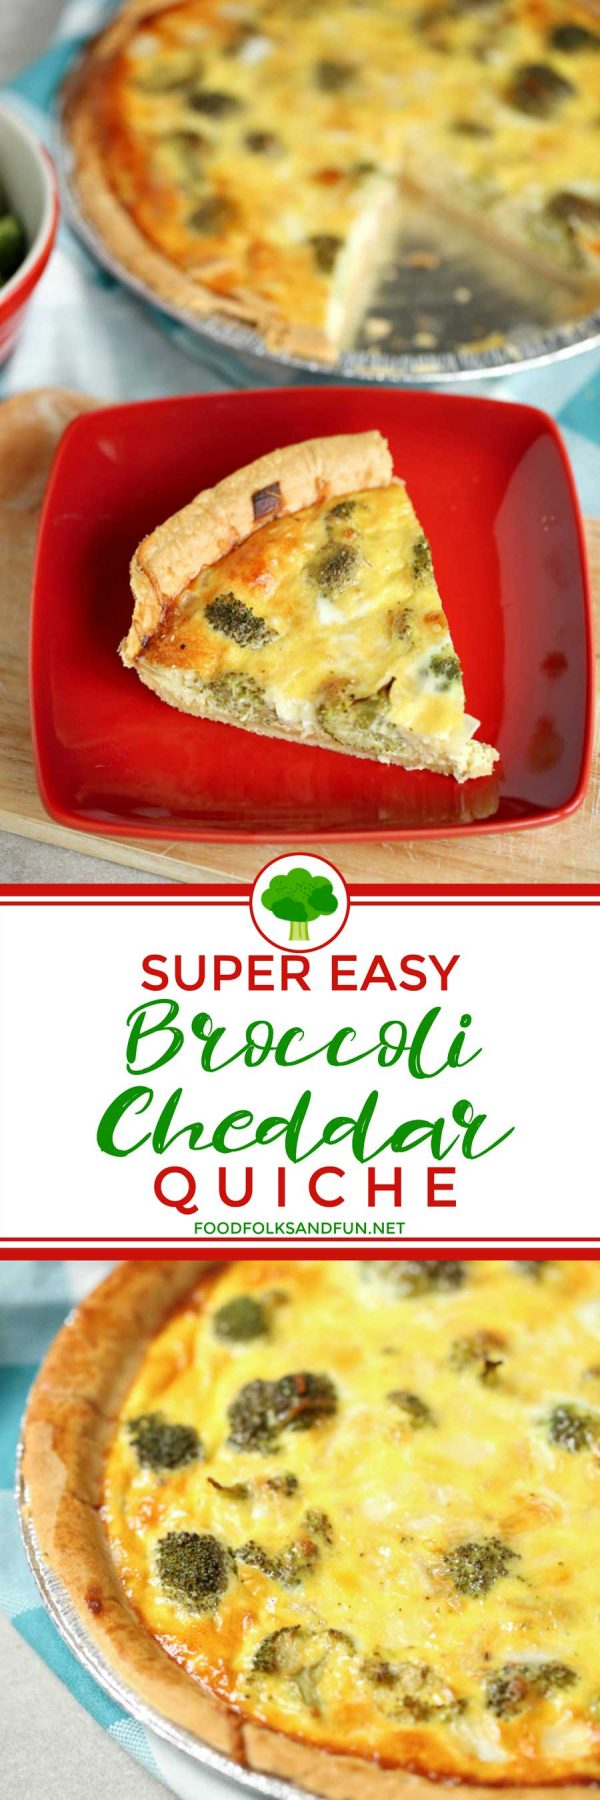 Picture collage of quiche for Pinterest